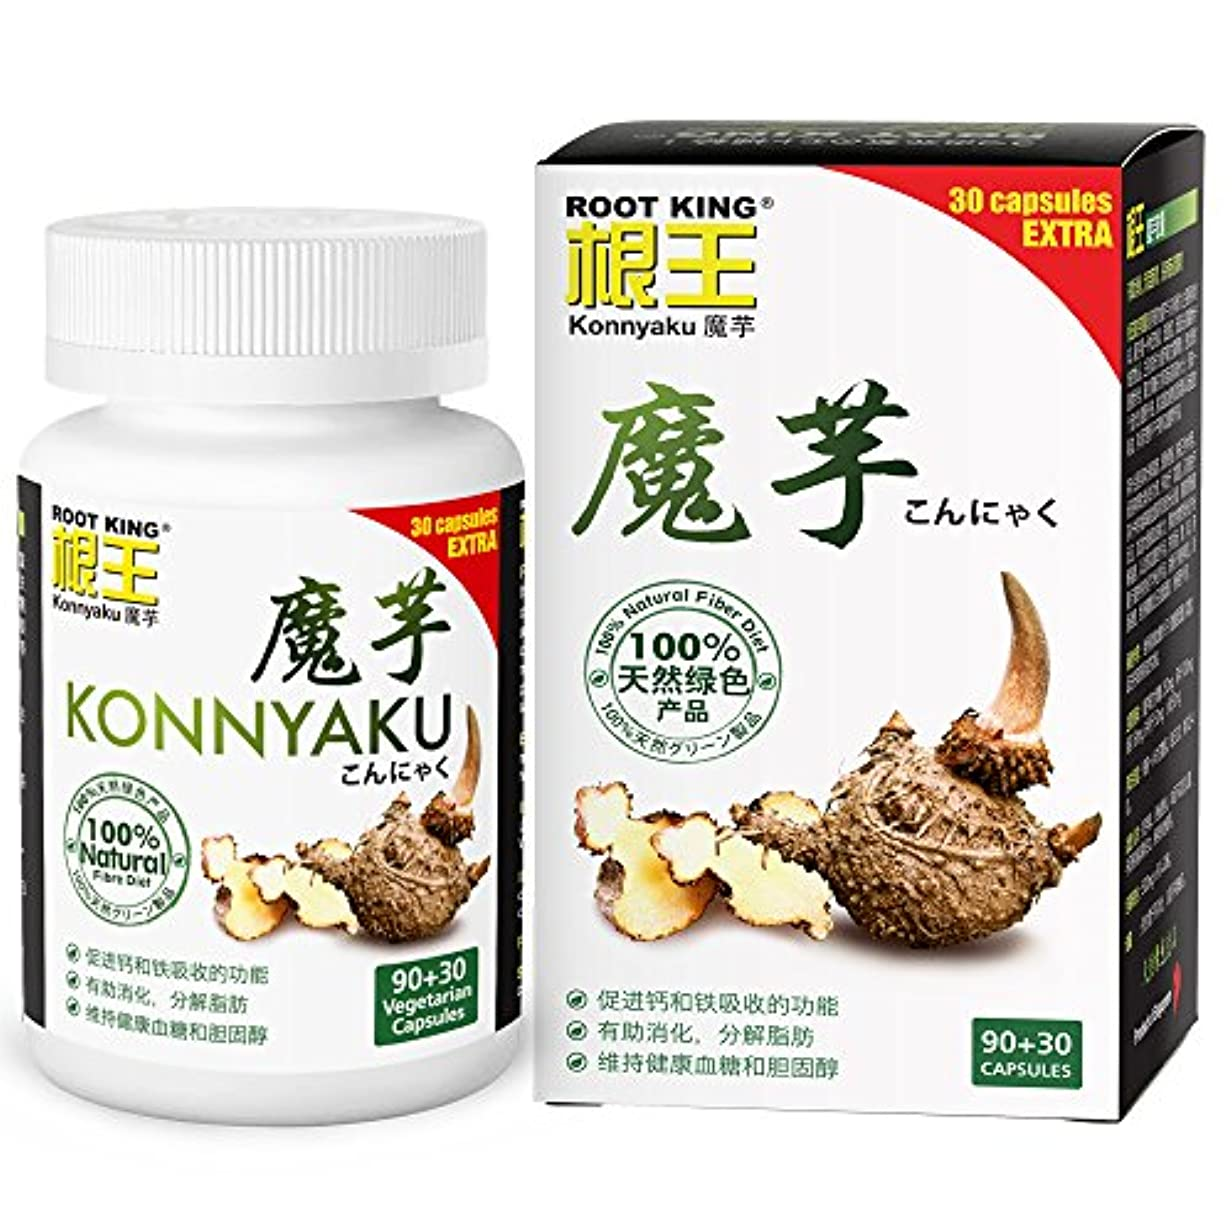 冷笑するじゃがいもマージROOT KING Konnyaku (120 Vegecaps) - control appetitide, feel fuller, contains Konjac glucomannan